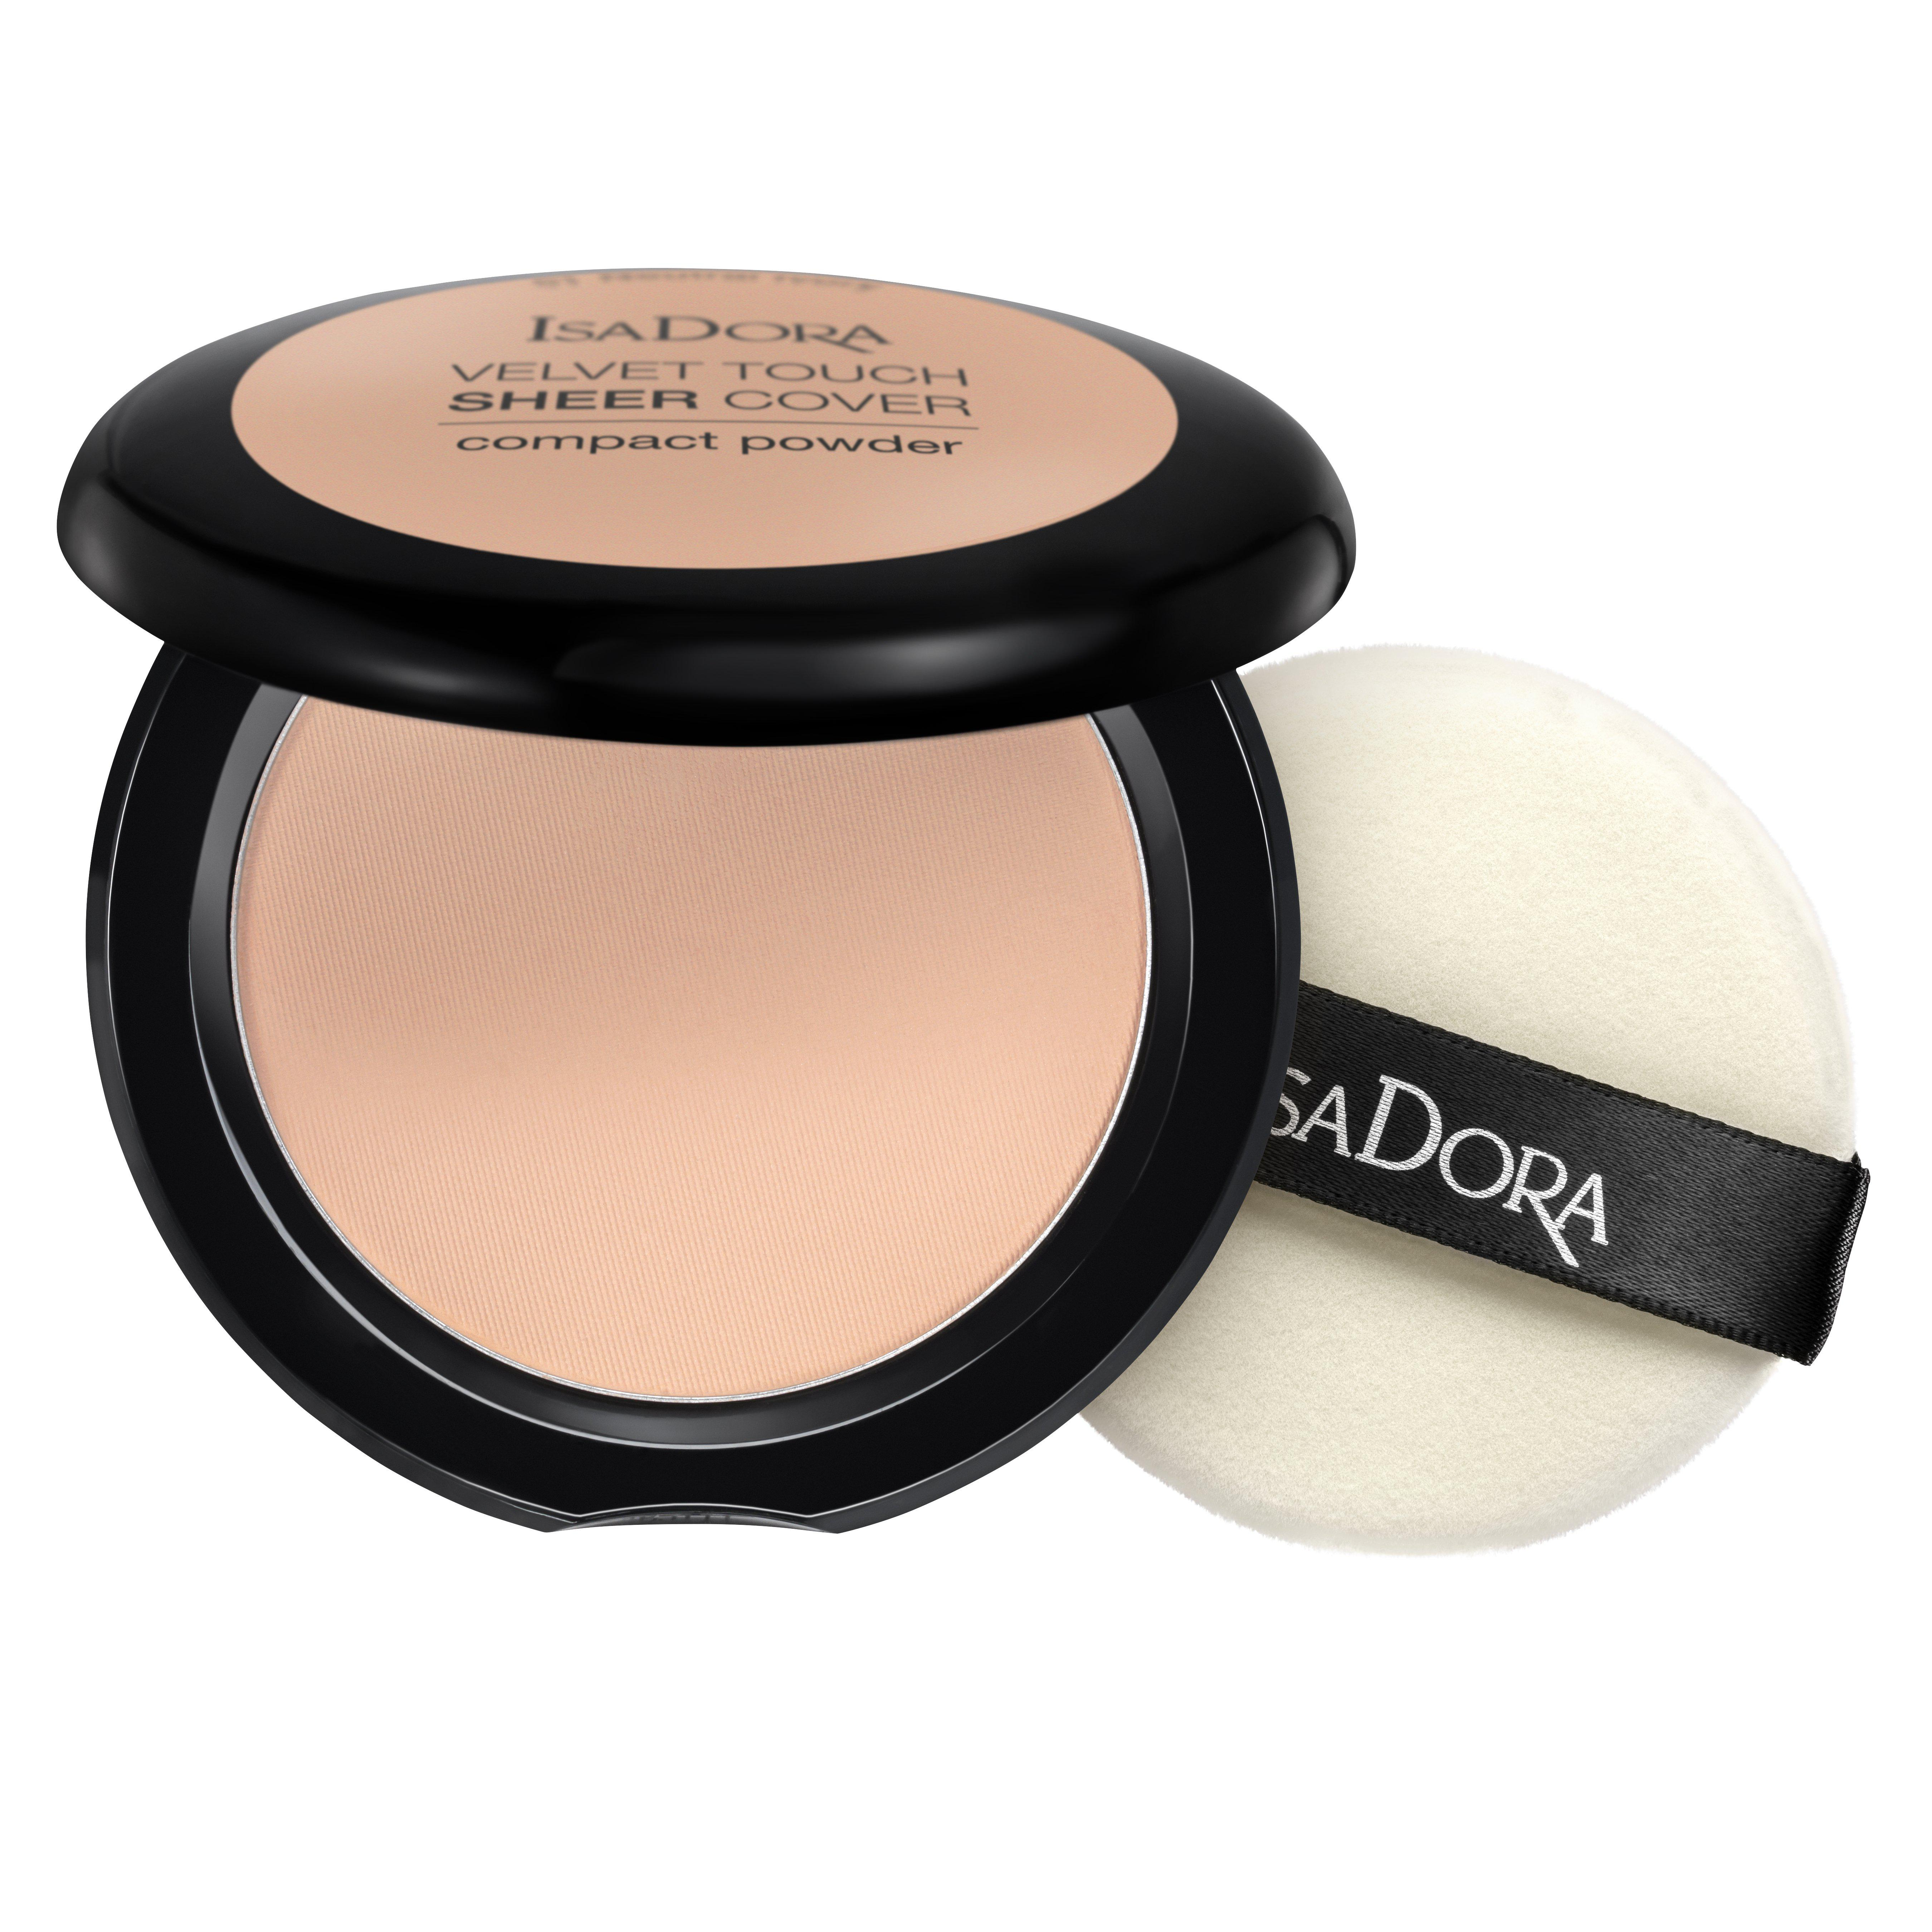 ISADORA. Velvet Touch Sheer Cover Compact Powder